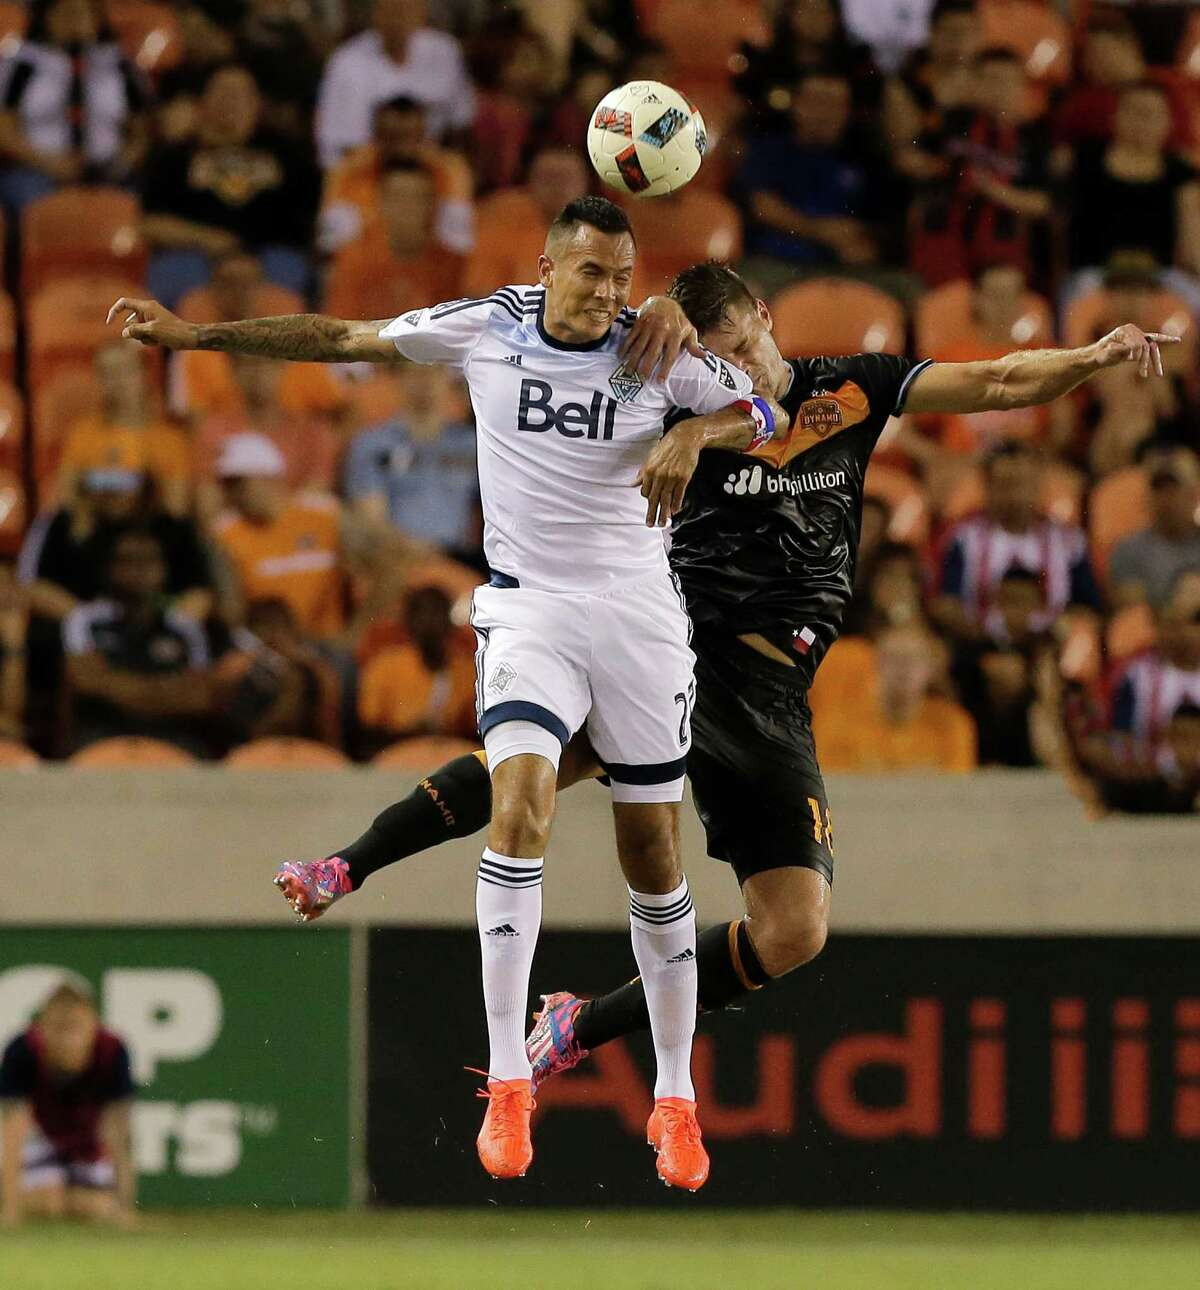 Vancouver Whitecaps forward Blas Perez (27) and Houston Dynamo defender David Horst (18) go up for a header during the second half during an MLS soccer match Saturday, July 23, 2016, in Houston. Houston and Vancouver played to scoreless draw. (AP Photo/Bob Levey)